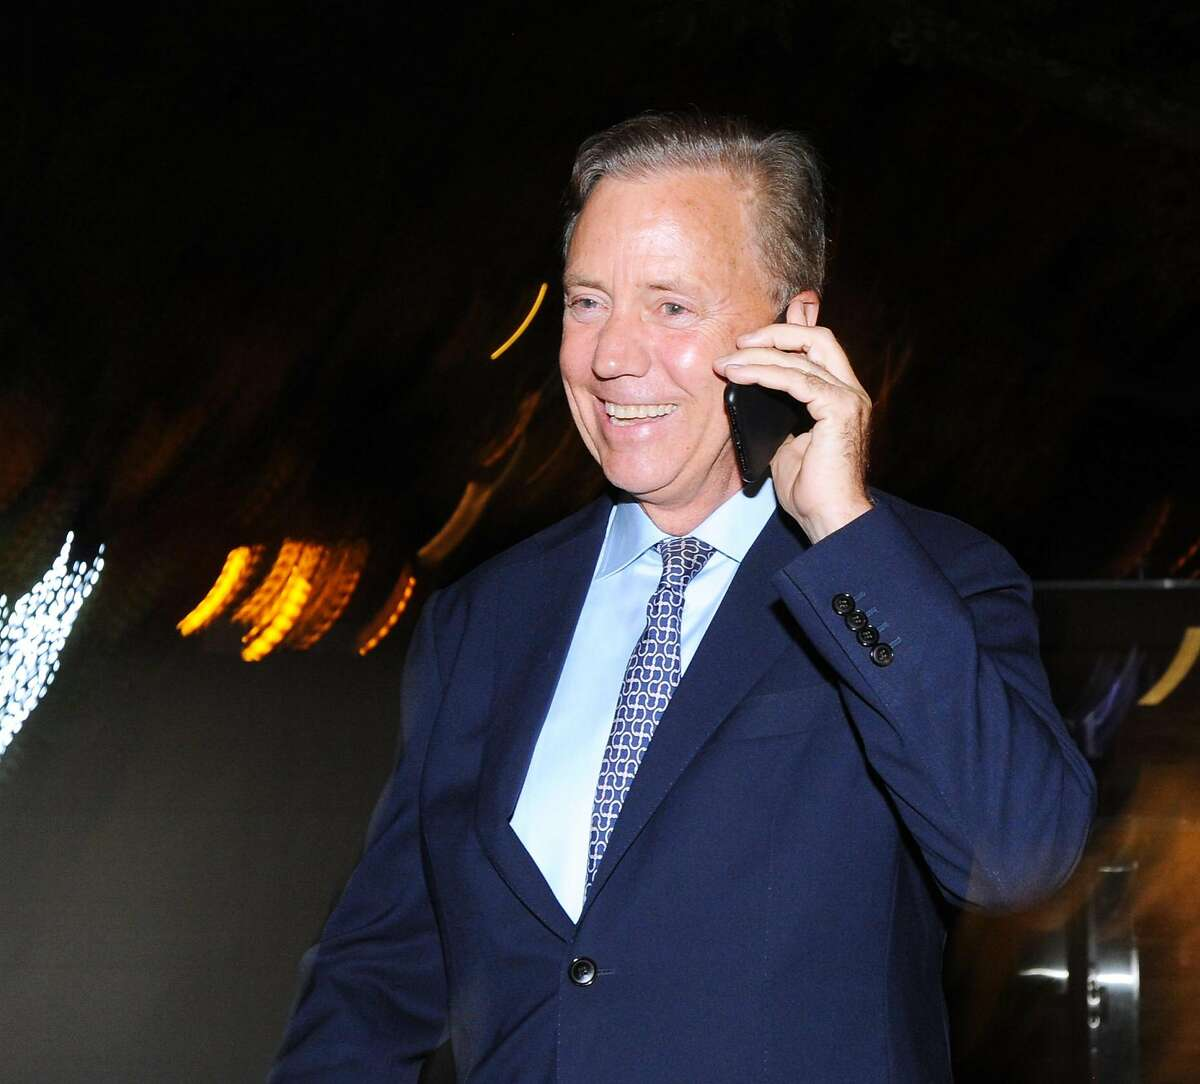 Ned Lamont, the endorsed Democratic candidate for governor of Connecticut, smiles as he takes a concession call from former Bridgeport Mayor Joe Ganim while walking on Chapel Street headed to his primary election victory reception at the College Street Music Hall, New Haven Conn., Tuesday, Aug. 14, 2018.